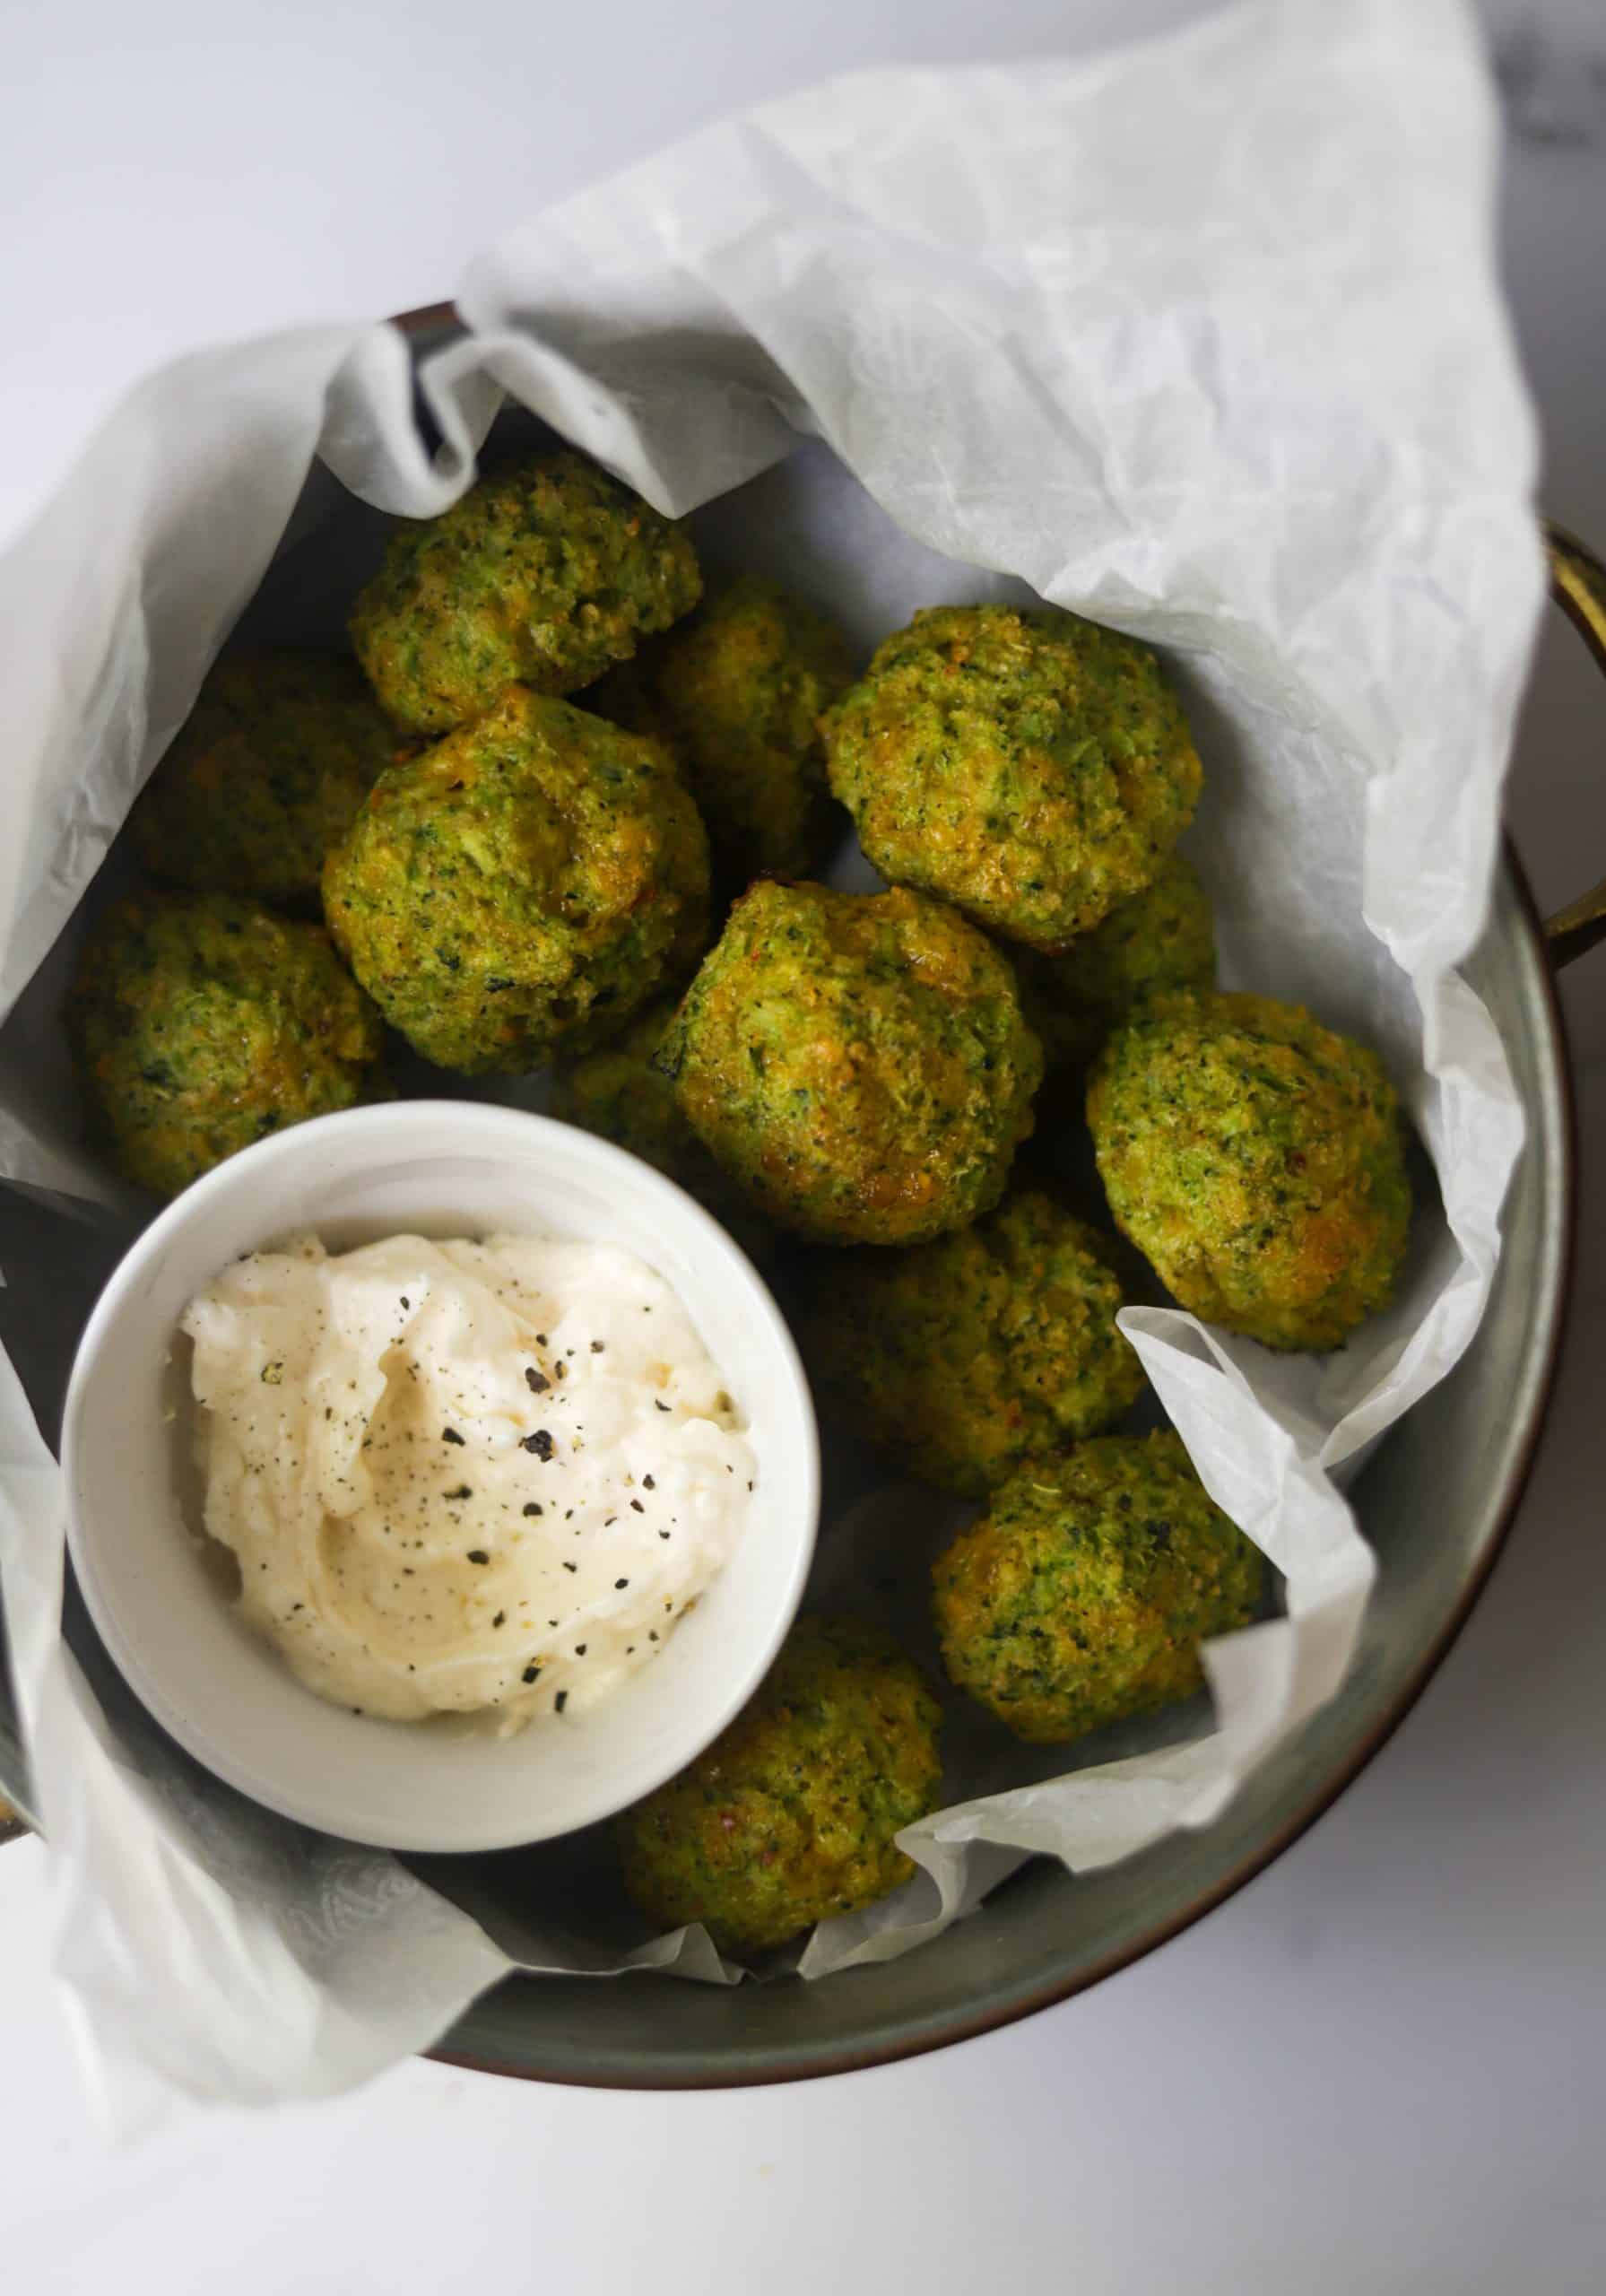 A container full of broccoli bites with a bowl of aioli.